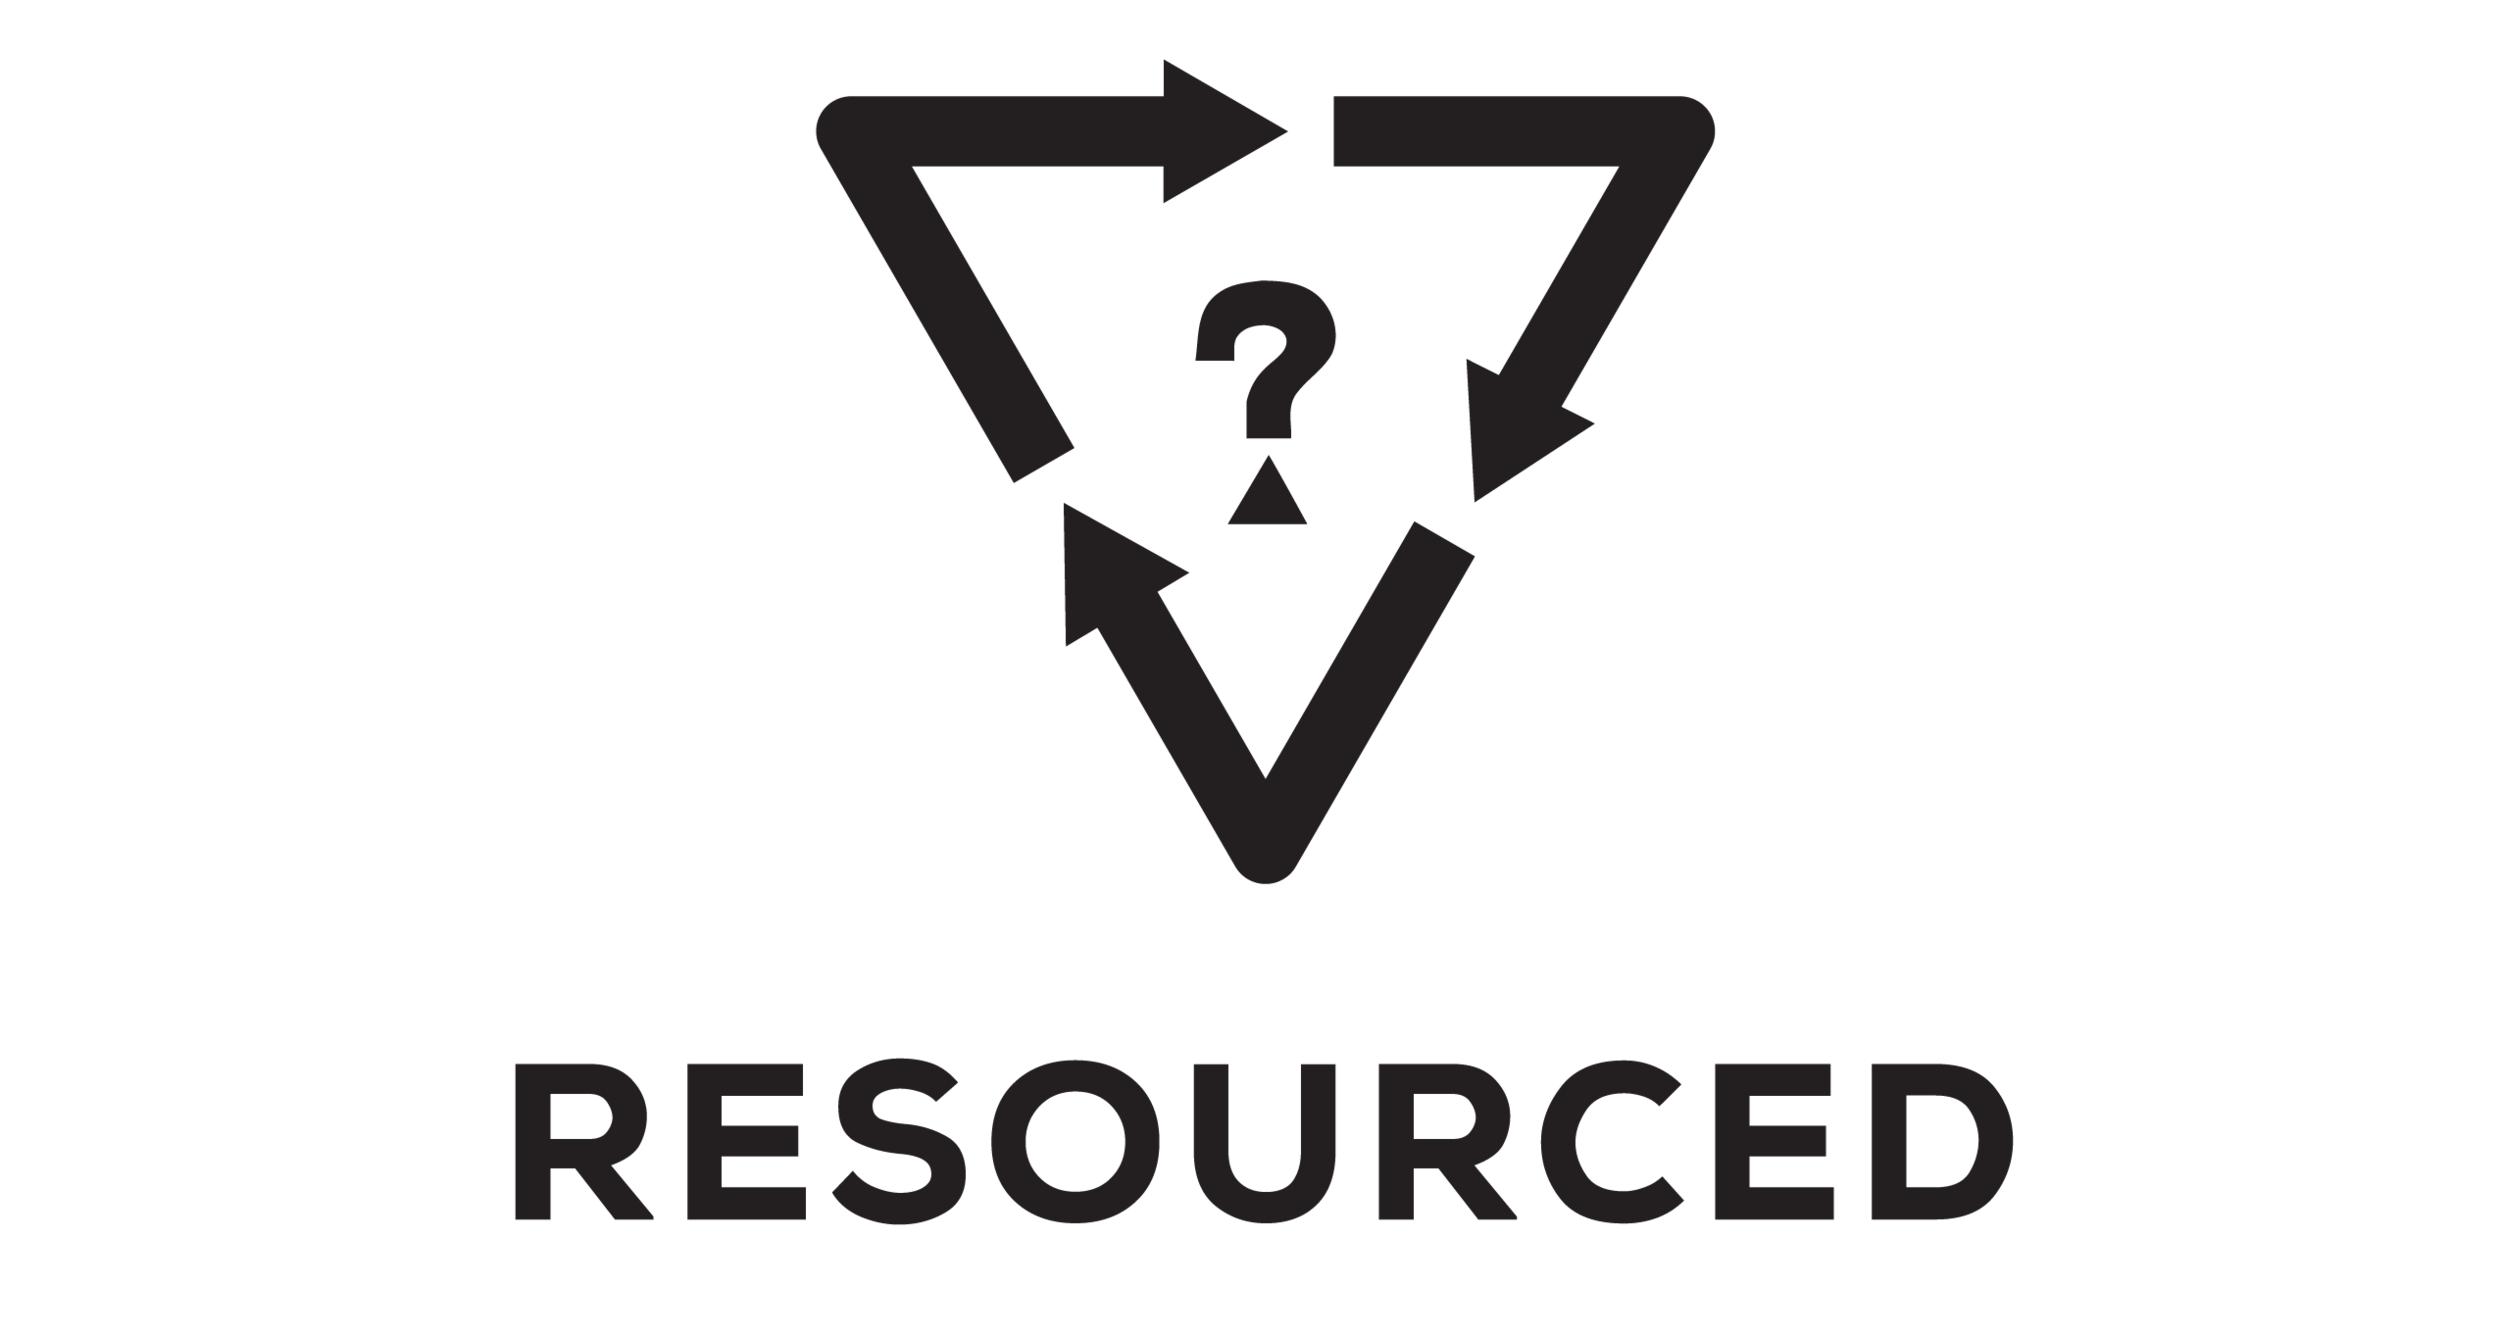 Resourced logo copy 2.png